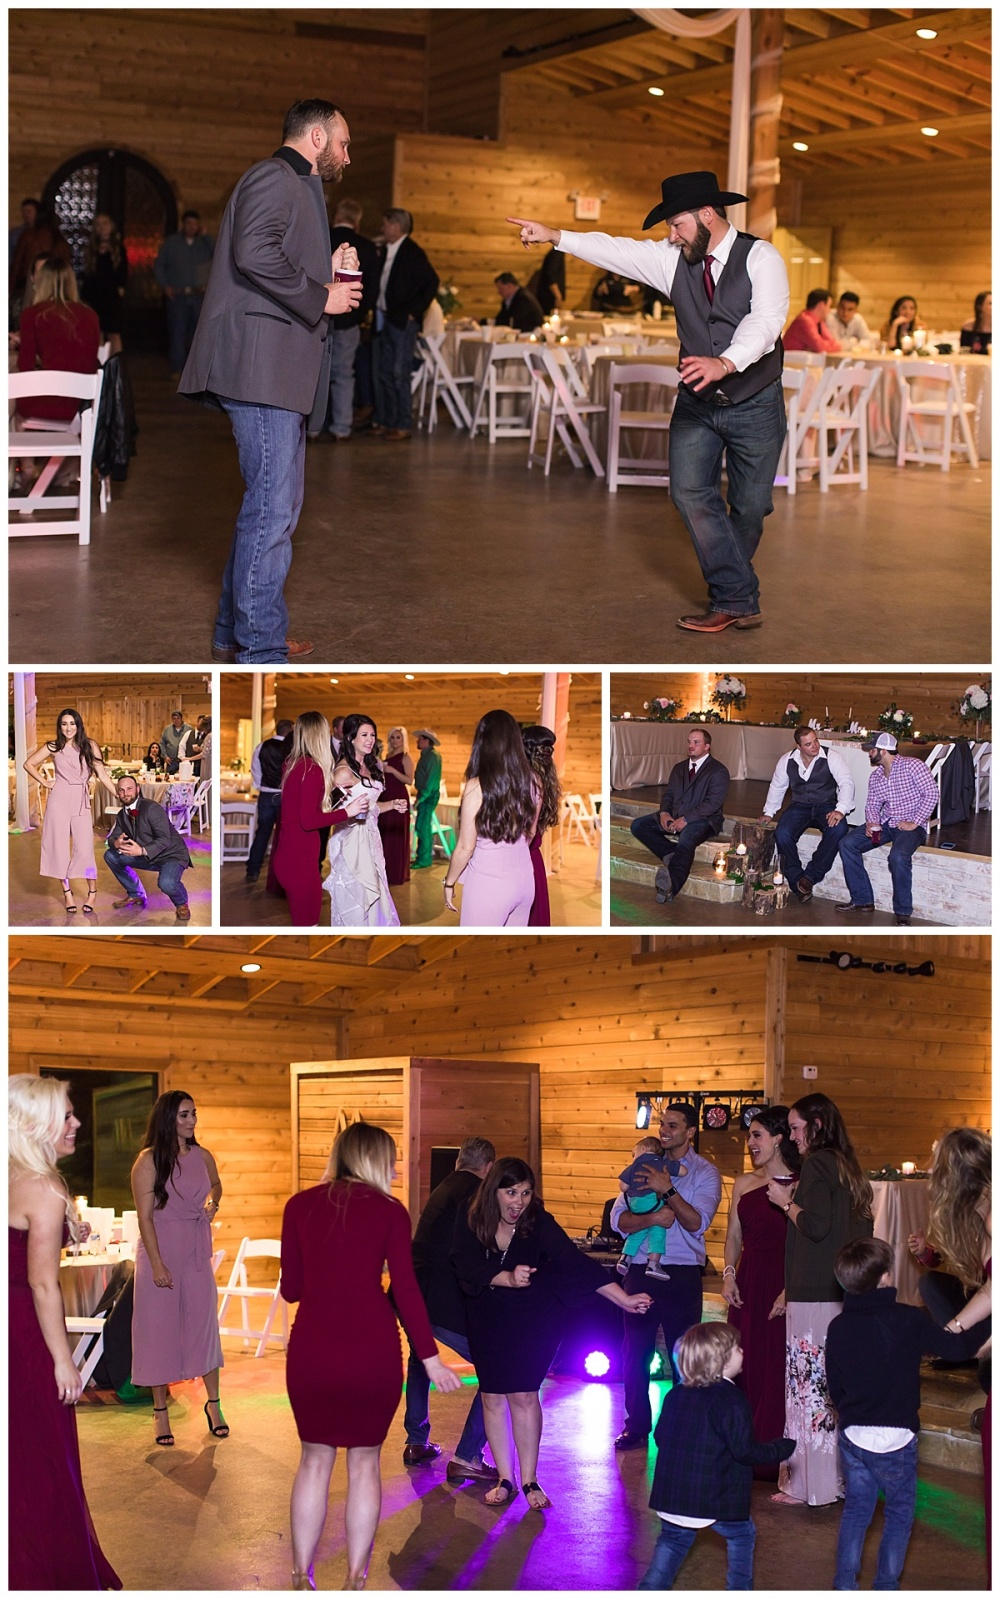 Carly-Barton-Photography-Geronimo-Oaks-Wedding-Venue-Texas-Hill-Country-Ronnie-Sarah_0127.jpg